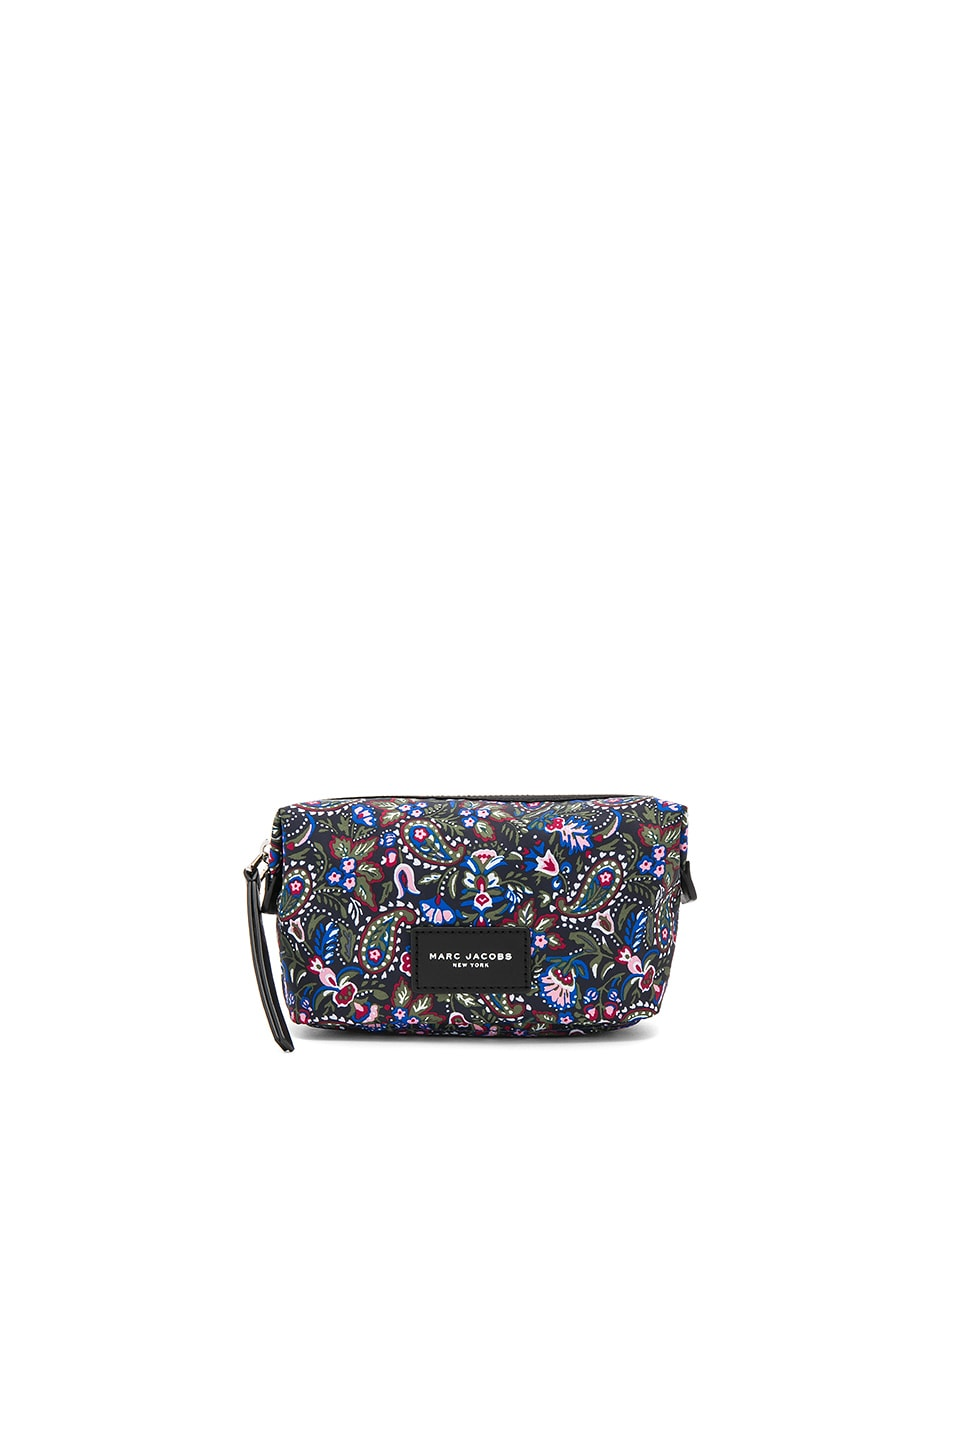 Garden Paisley Biker Landscape Bag by Marc Jacobs